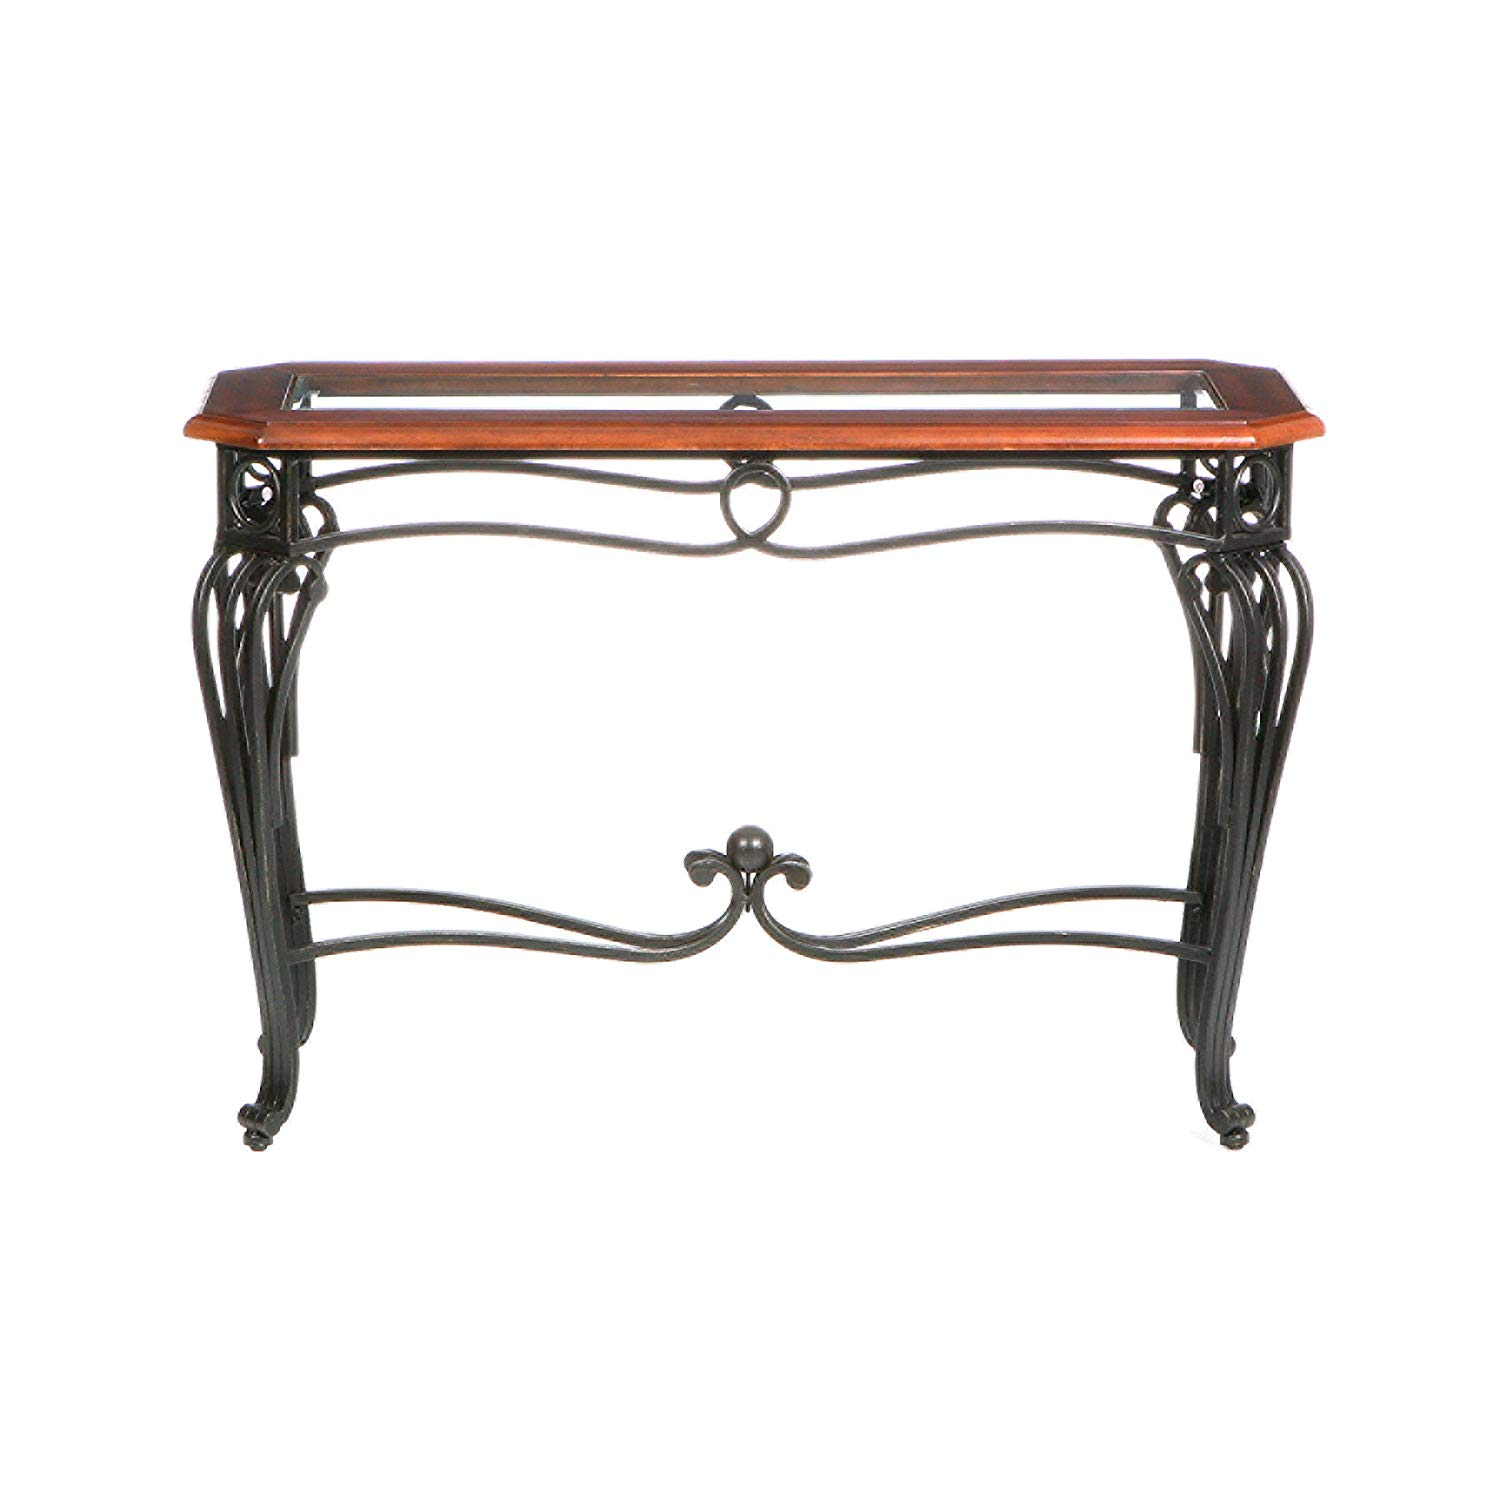 southern enterprises prentice sofa console table dark room essentials mixed material accent cherry with black finish kitchen dining teak rocking chairs door threshold patio end